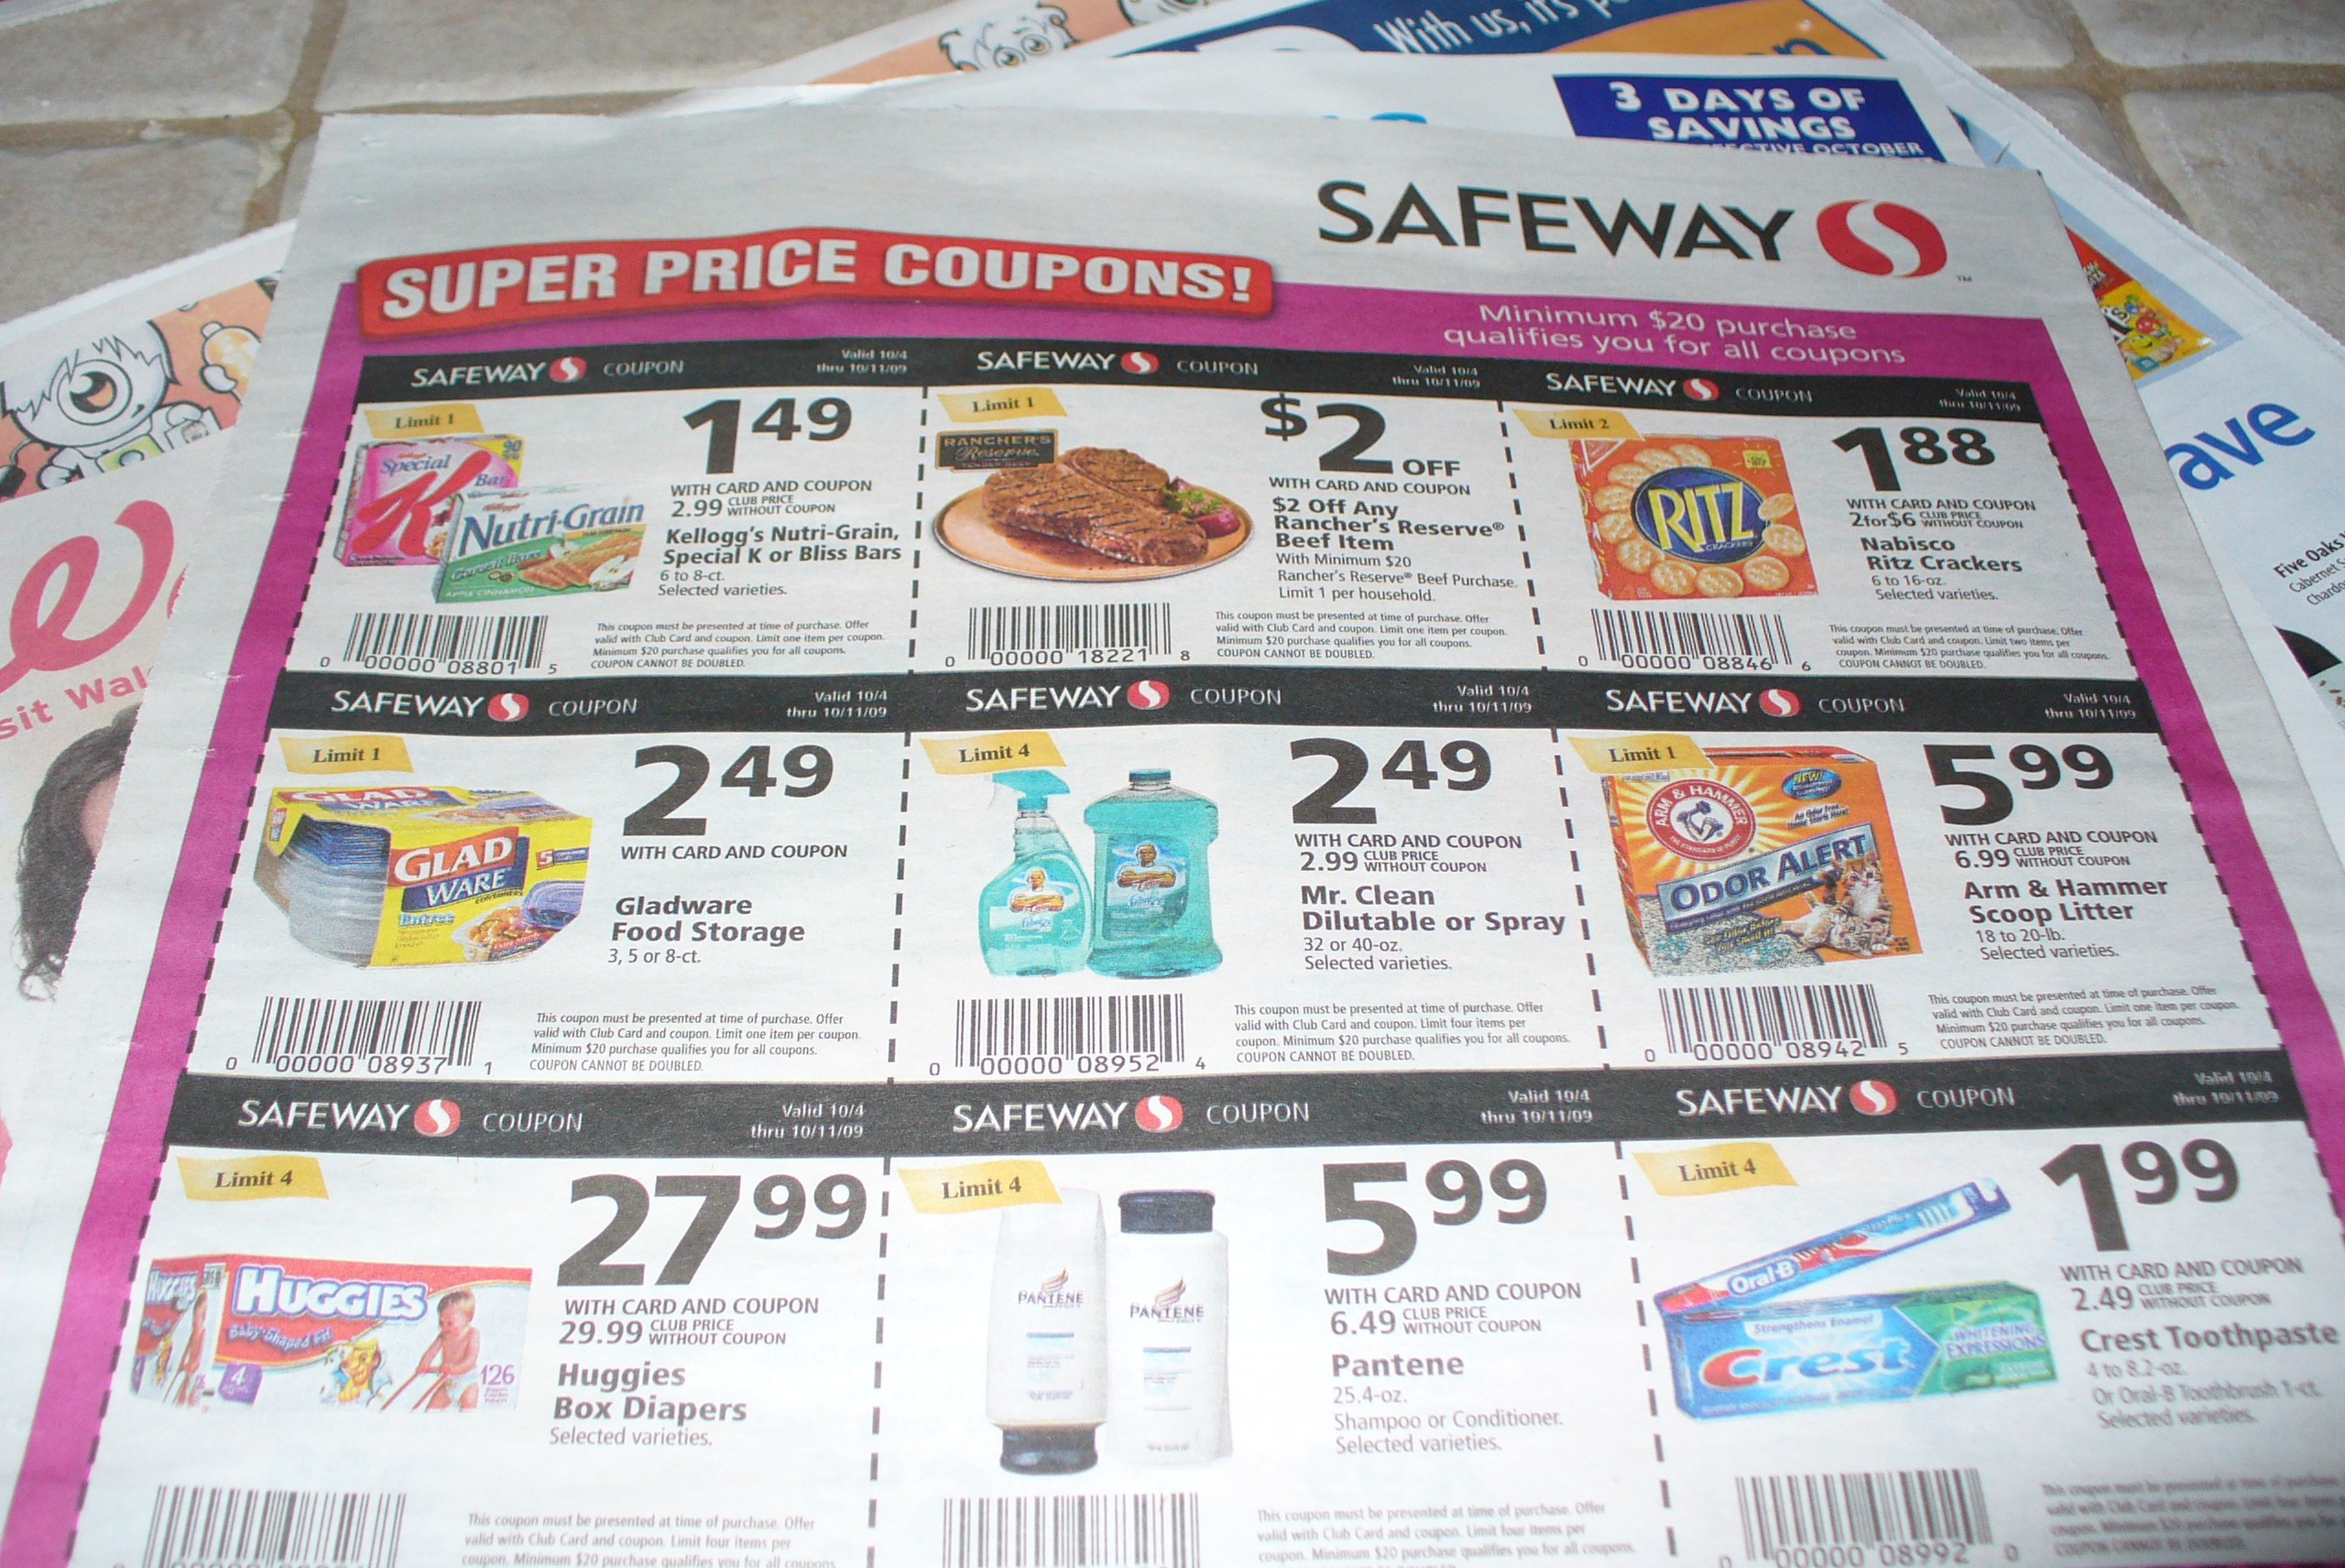 Are there coupon inserts in today's paper